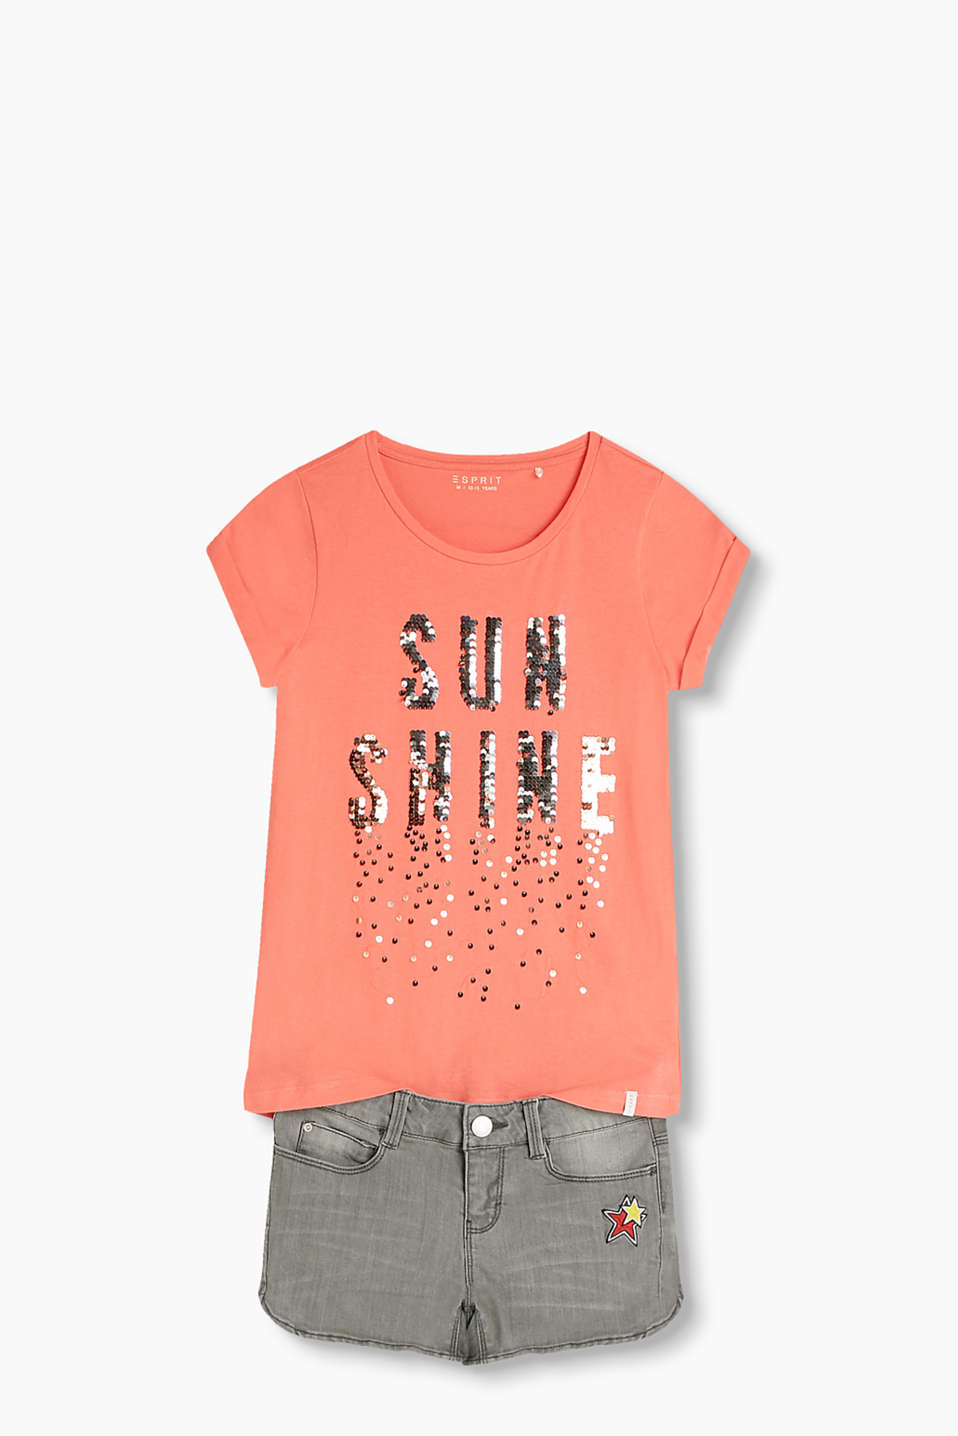 T-shirt with stunning appliquéd sequins, made of 100% cotton